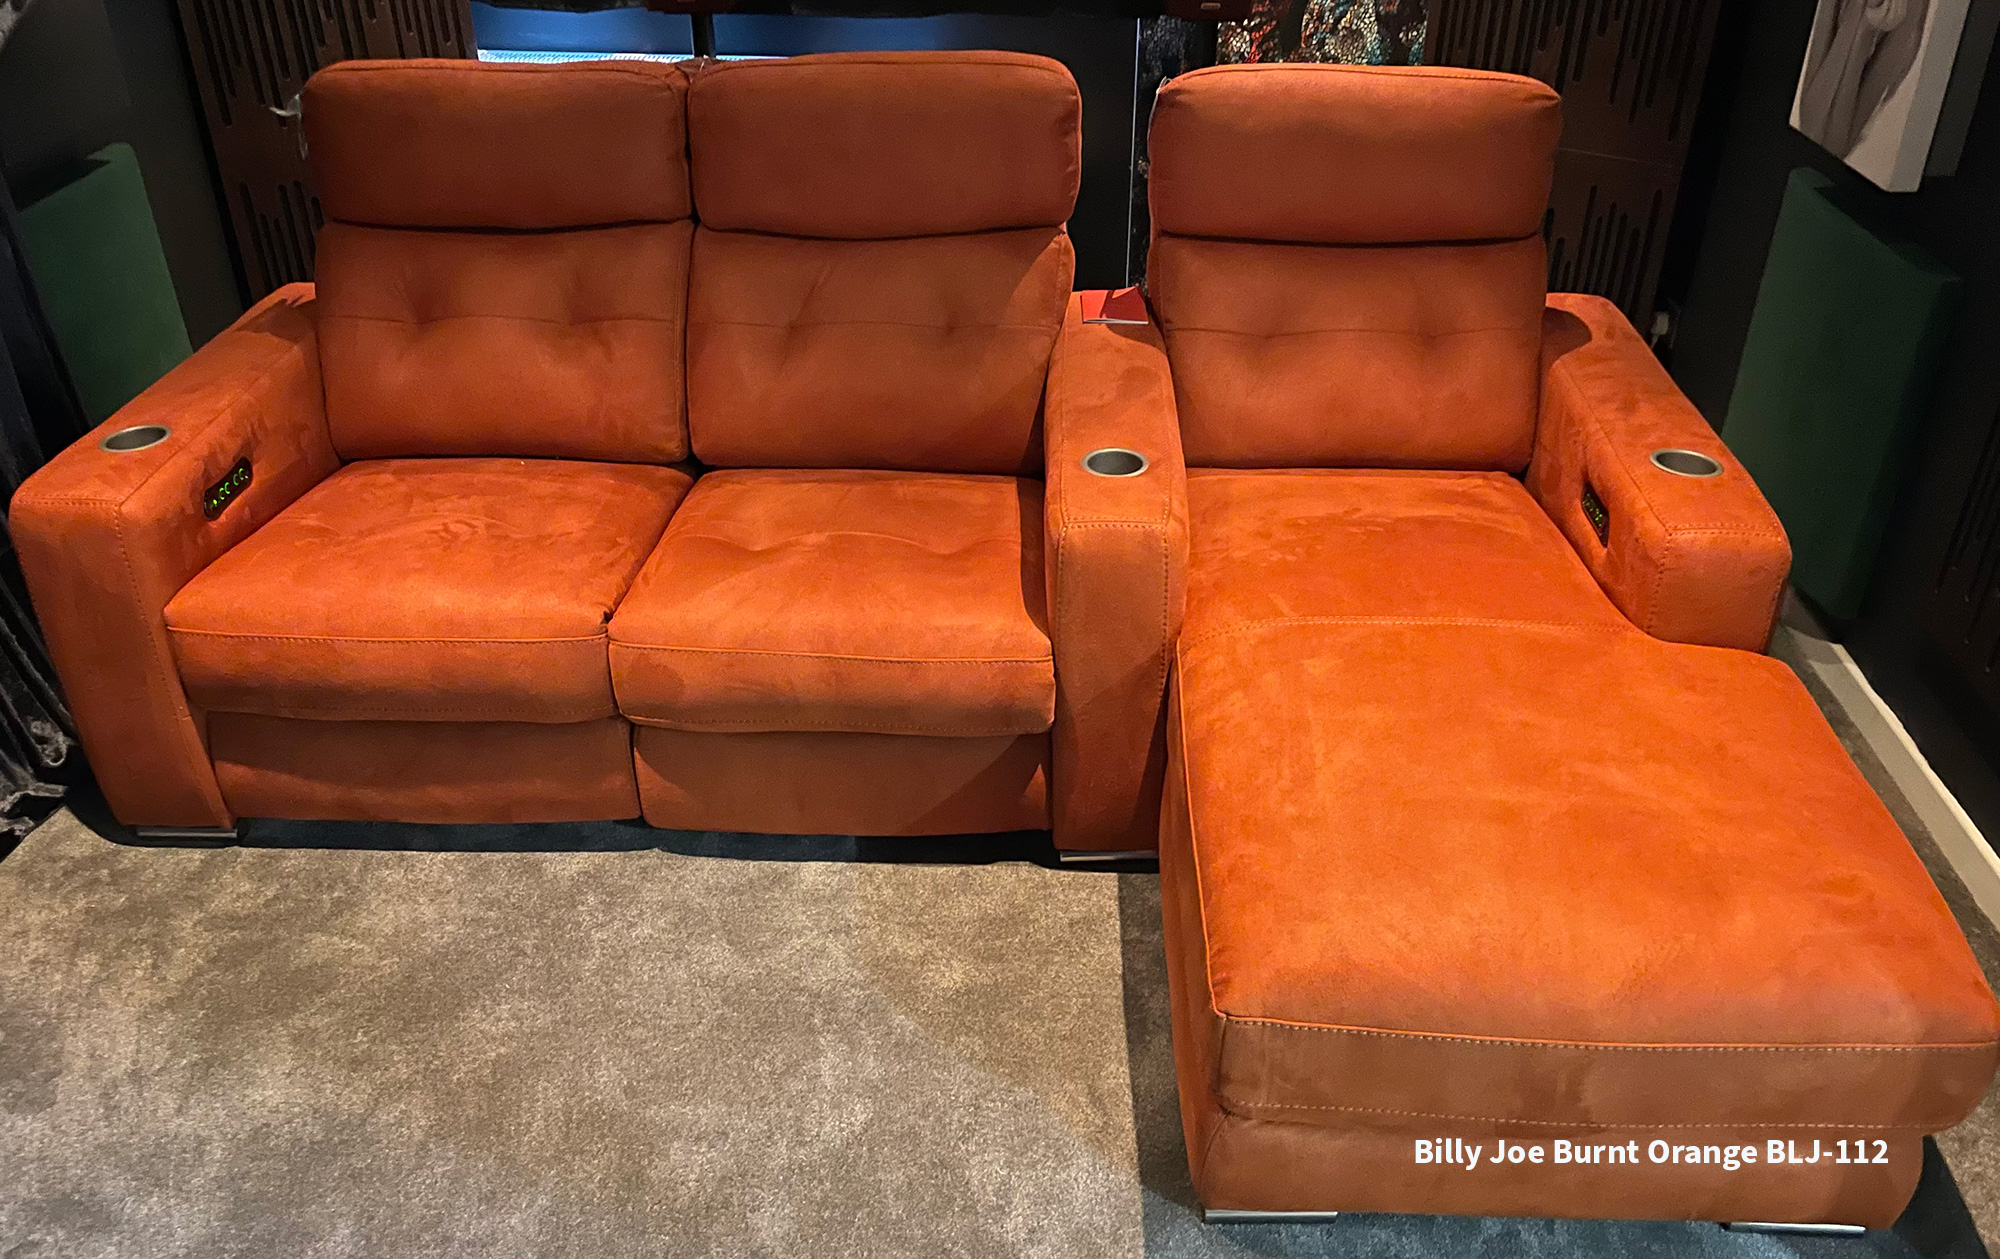 Frontrow™ Serenity home cinema seating Billy Joe Burnt orange